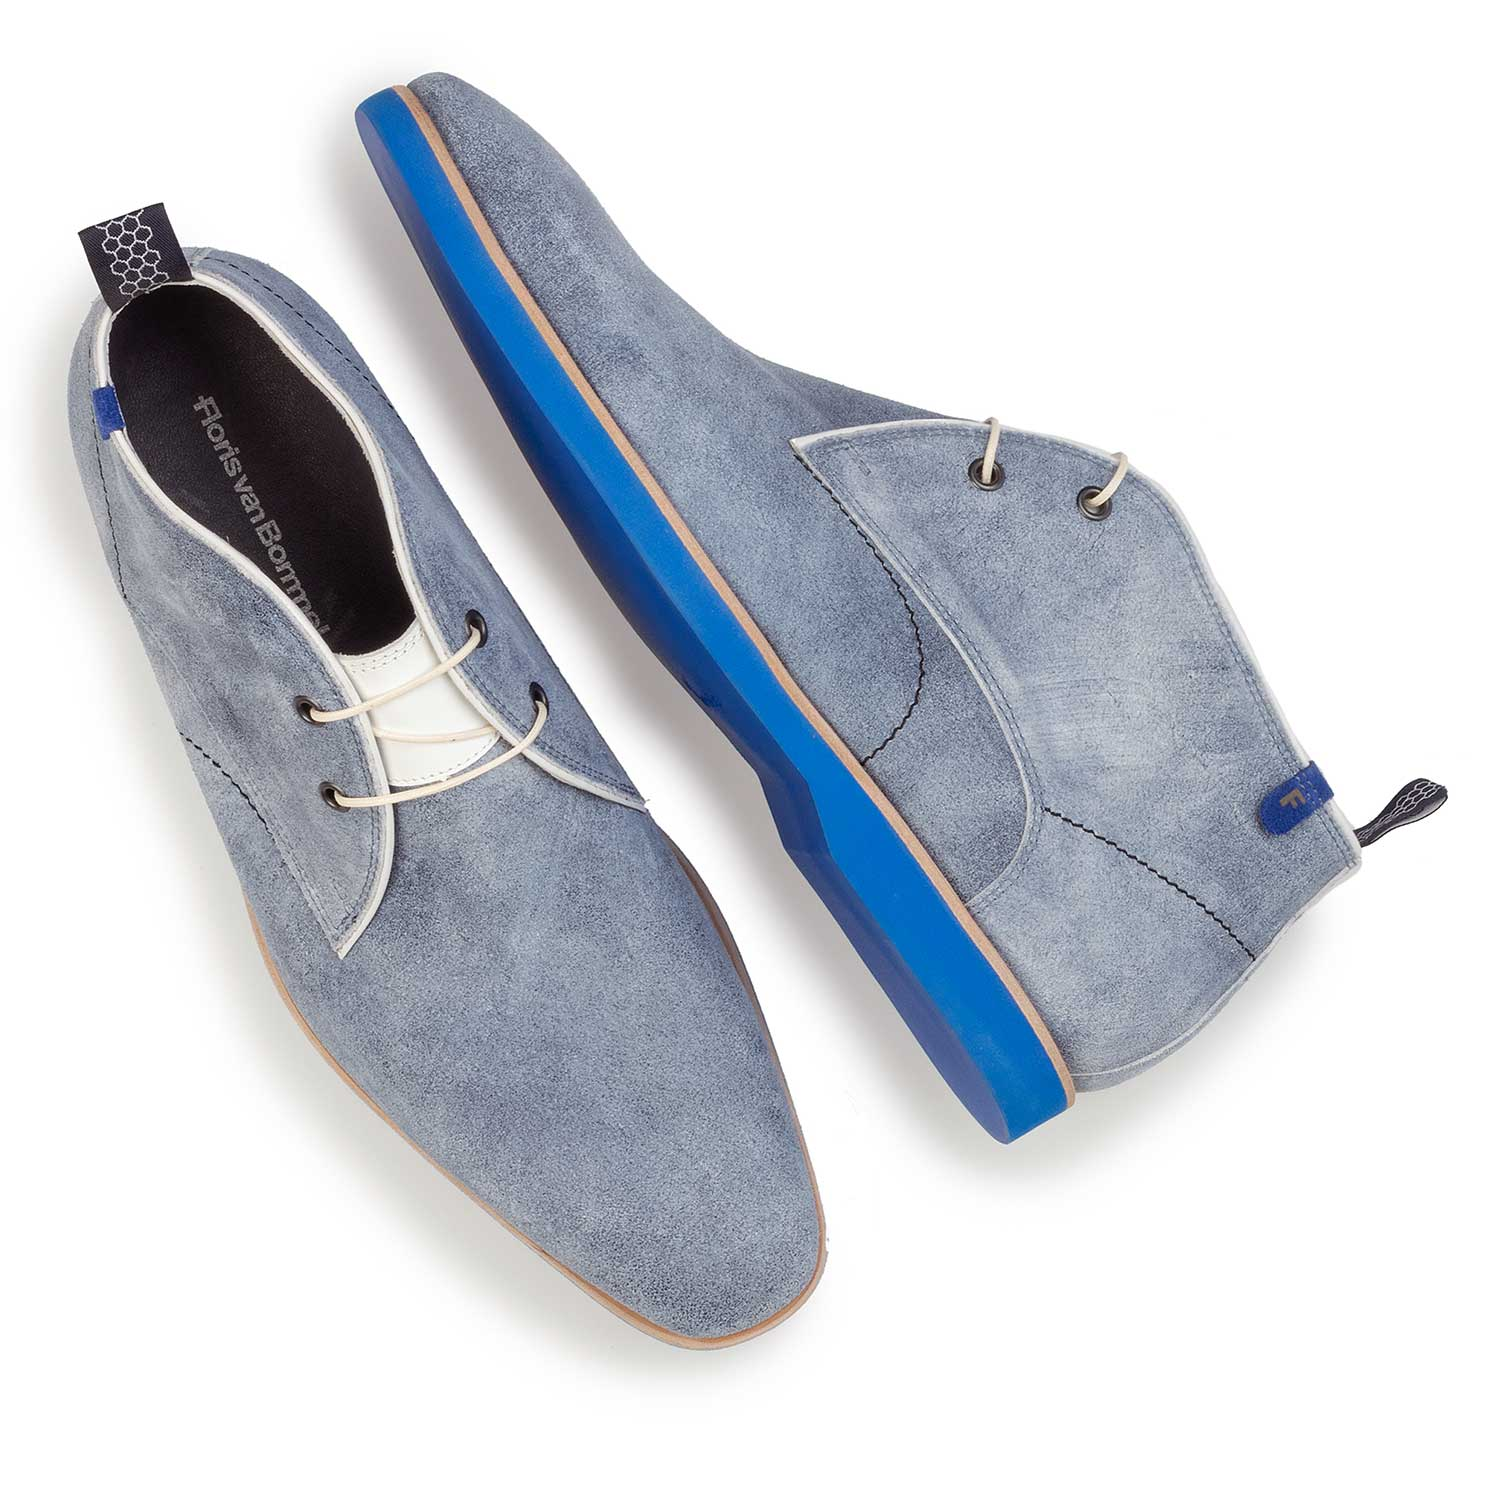 10014/00 - Light blue, washed suede leather lace boot